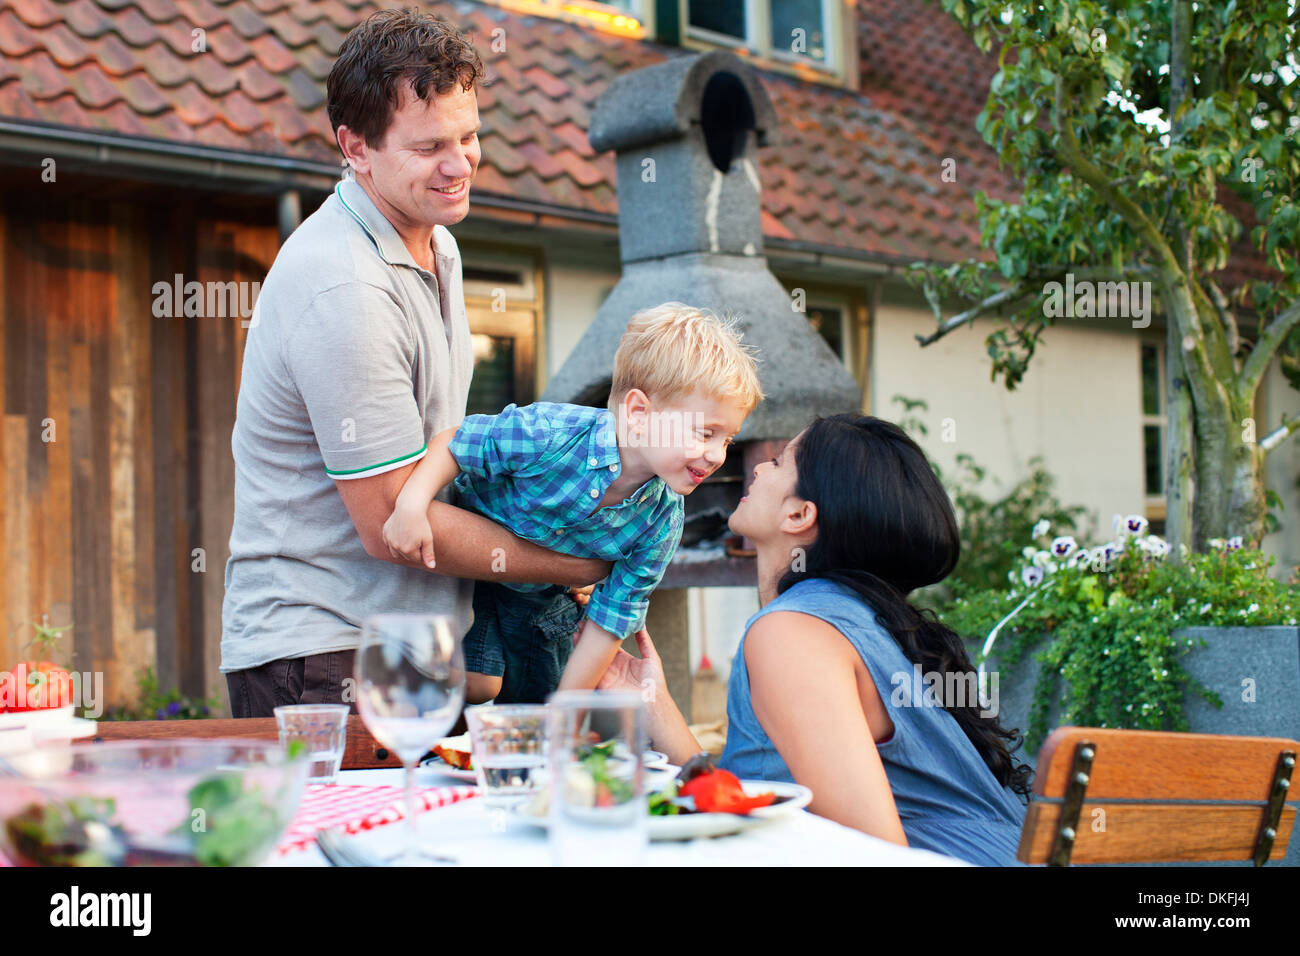 Family having dinner in garden Photo Stock